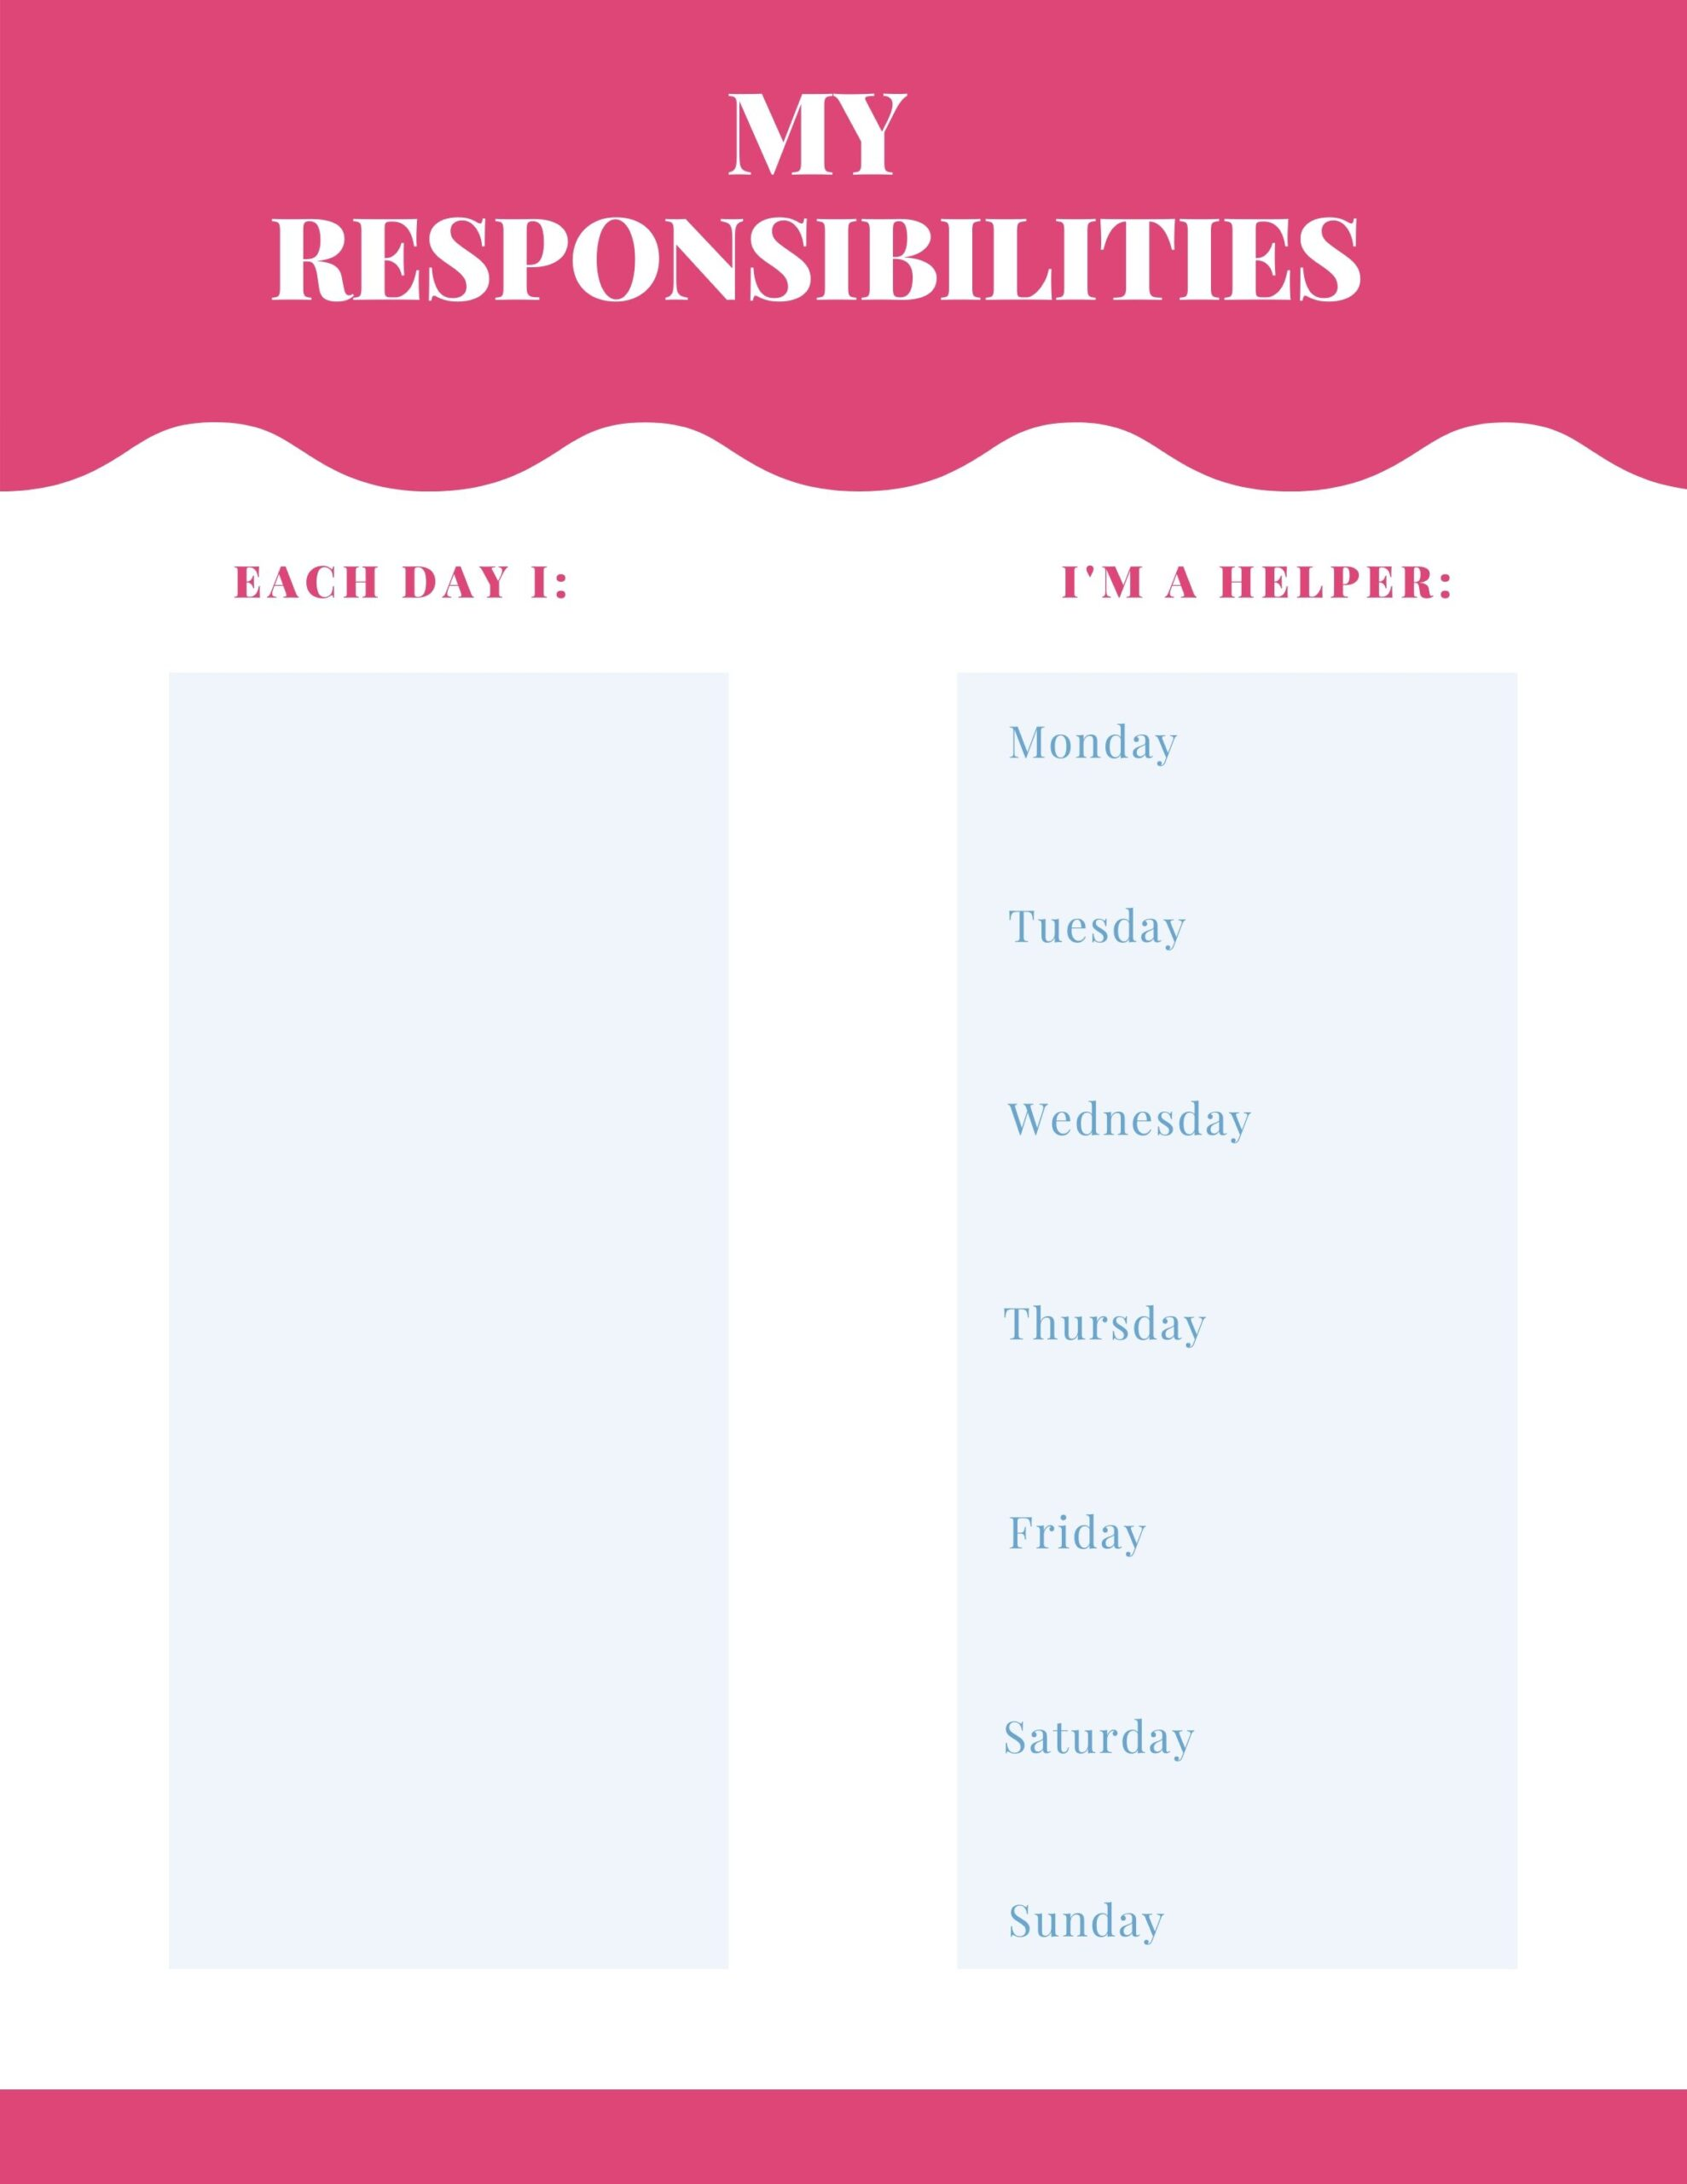 Looking for an easy to use kids chore chart? This post outlines how to set up chores with your kids, what ages are best for what chores and how to make it all work realistically!